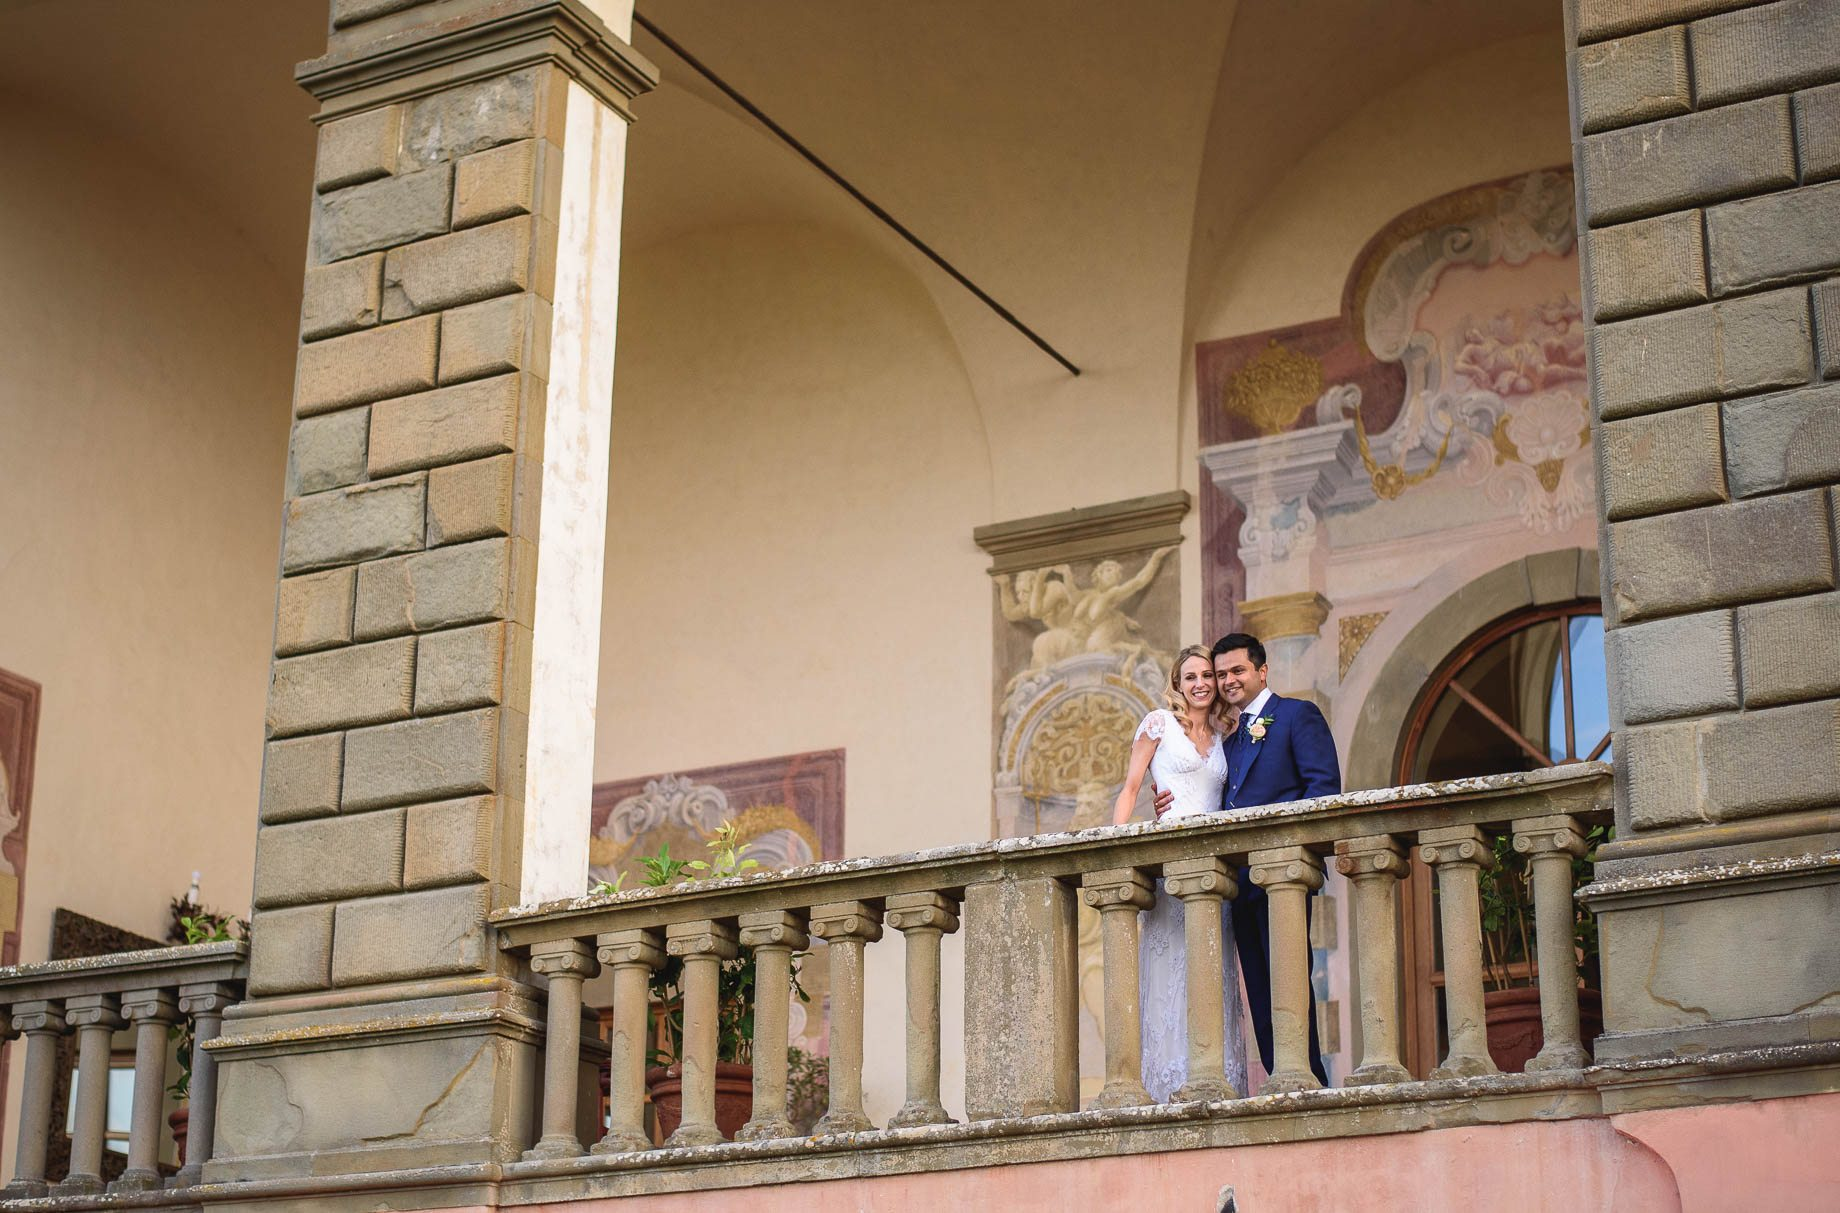 Tuscany wedding photography - Roisin and Moubin - Guy Collier Photography (162 of 251)